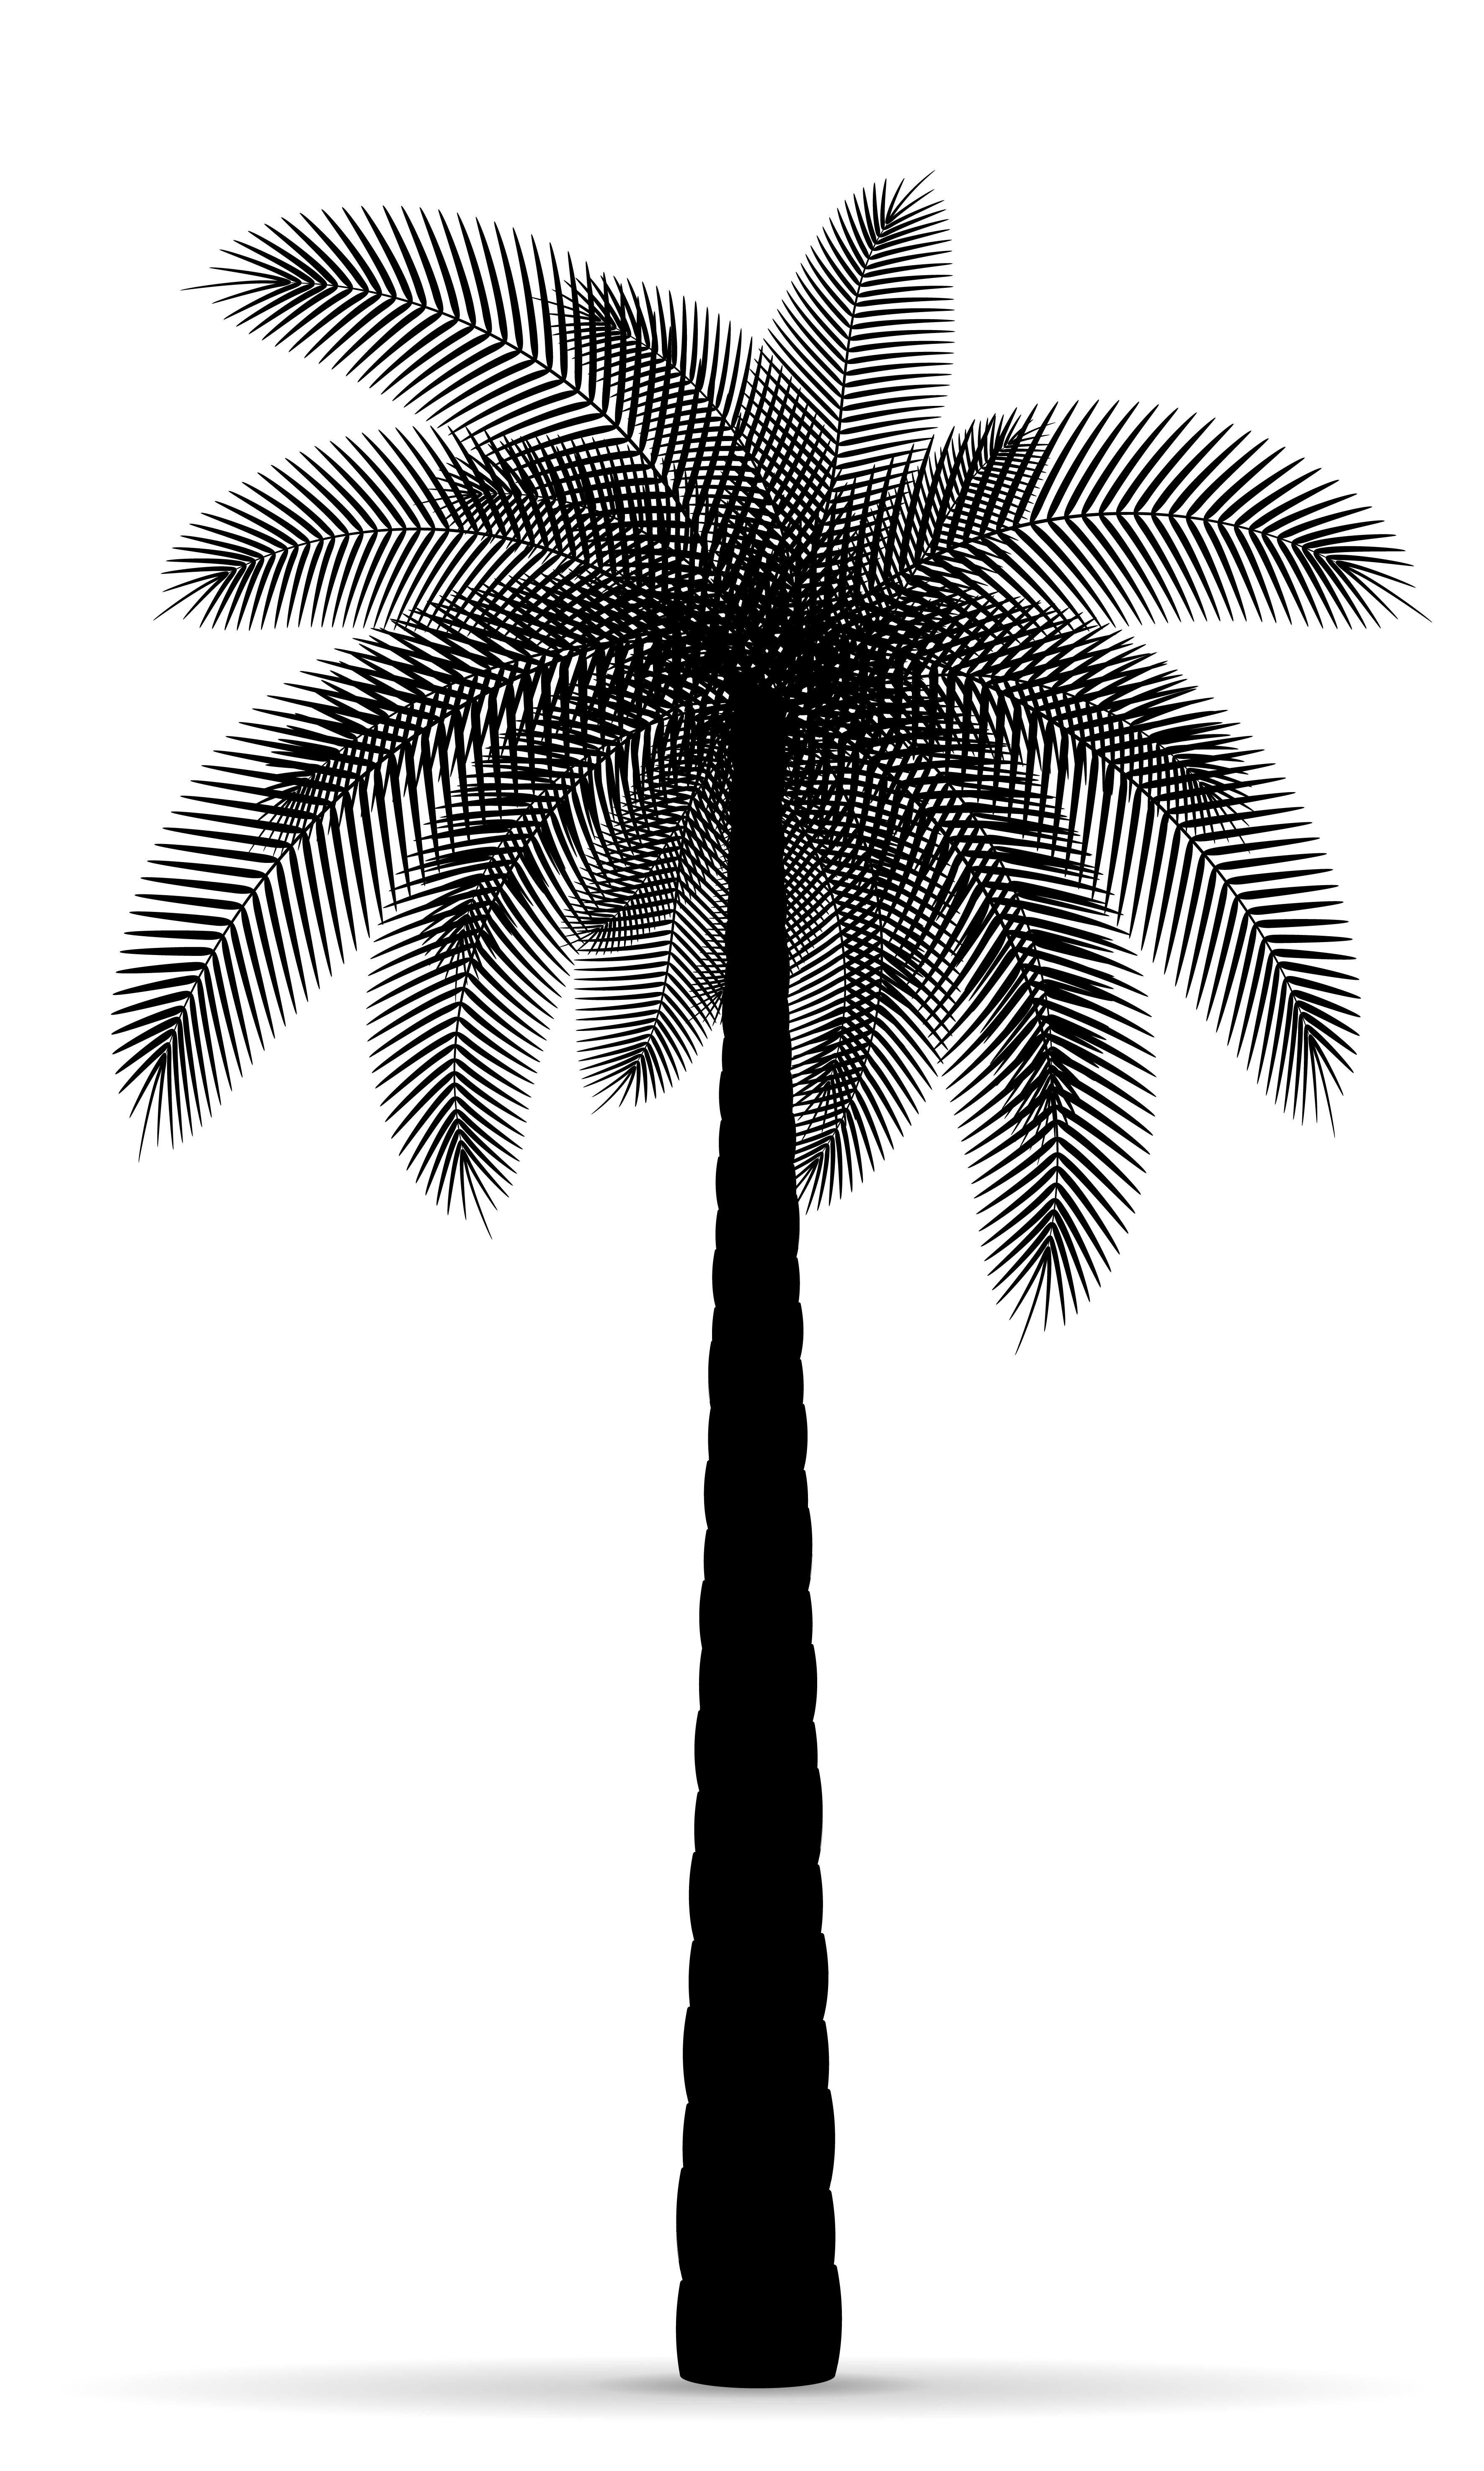 palm tree outline palm tree black outline silhouette stock vector palm tree outline